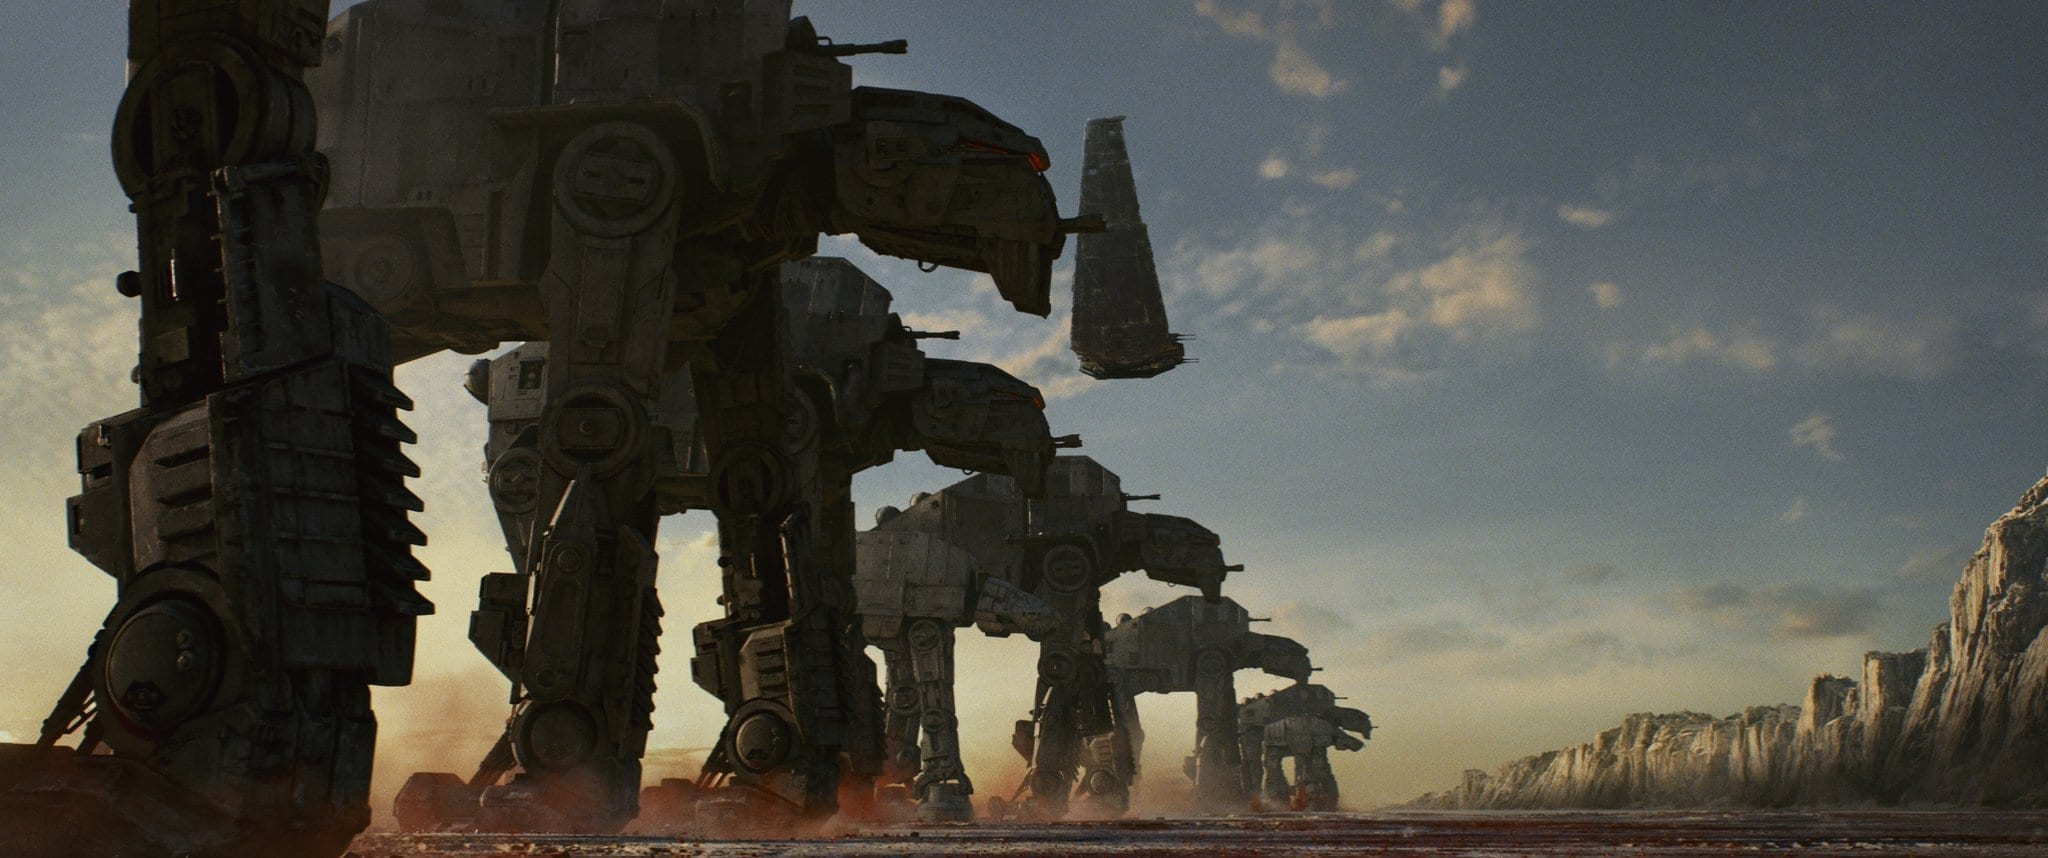 Star Wars: The Last Jedi..AT-M6 Walkers, along with Kylo's Shuttle..Photo: Lucasfilm Ltd. ..© 2017 Lucasfilm Ltd. All Rights Reserved.